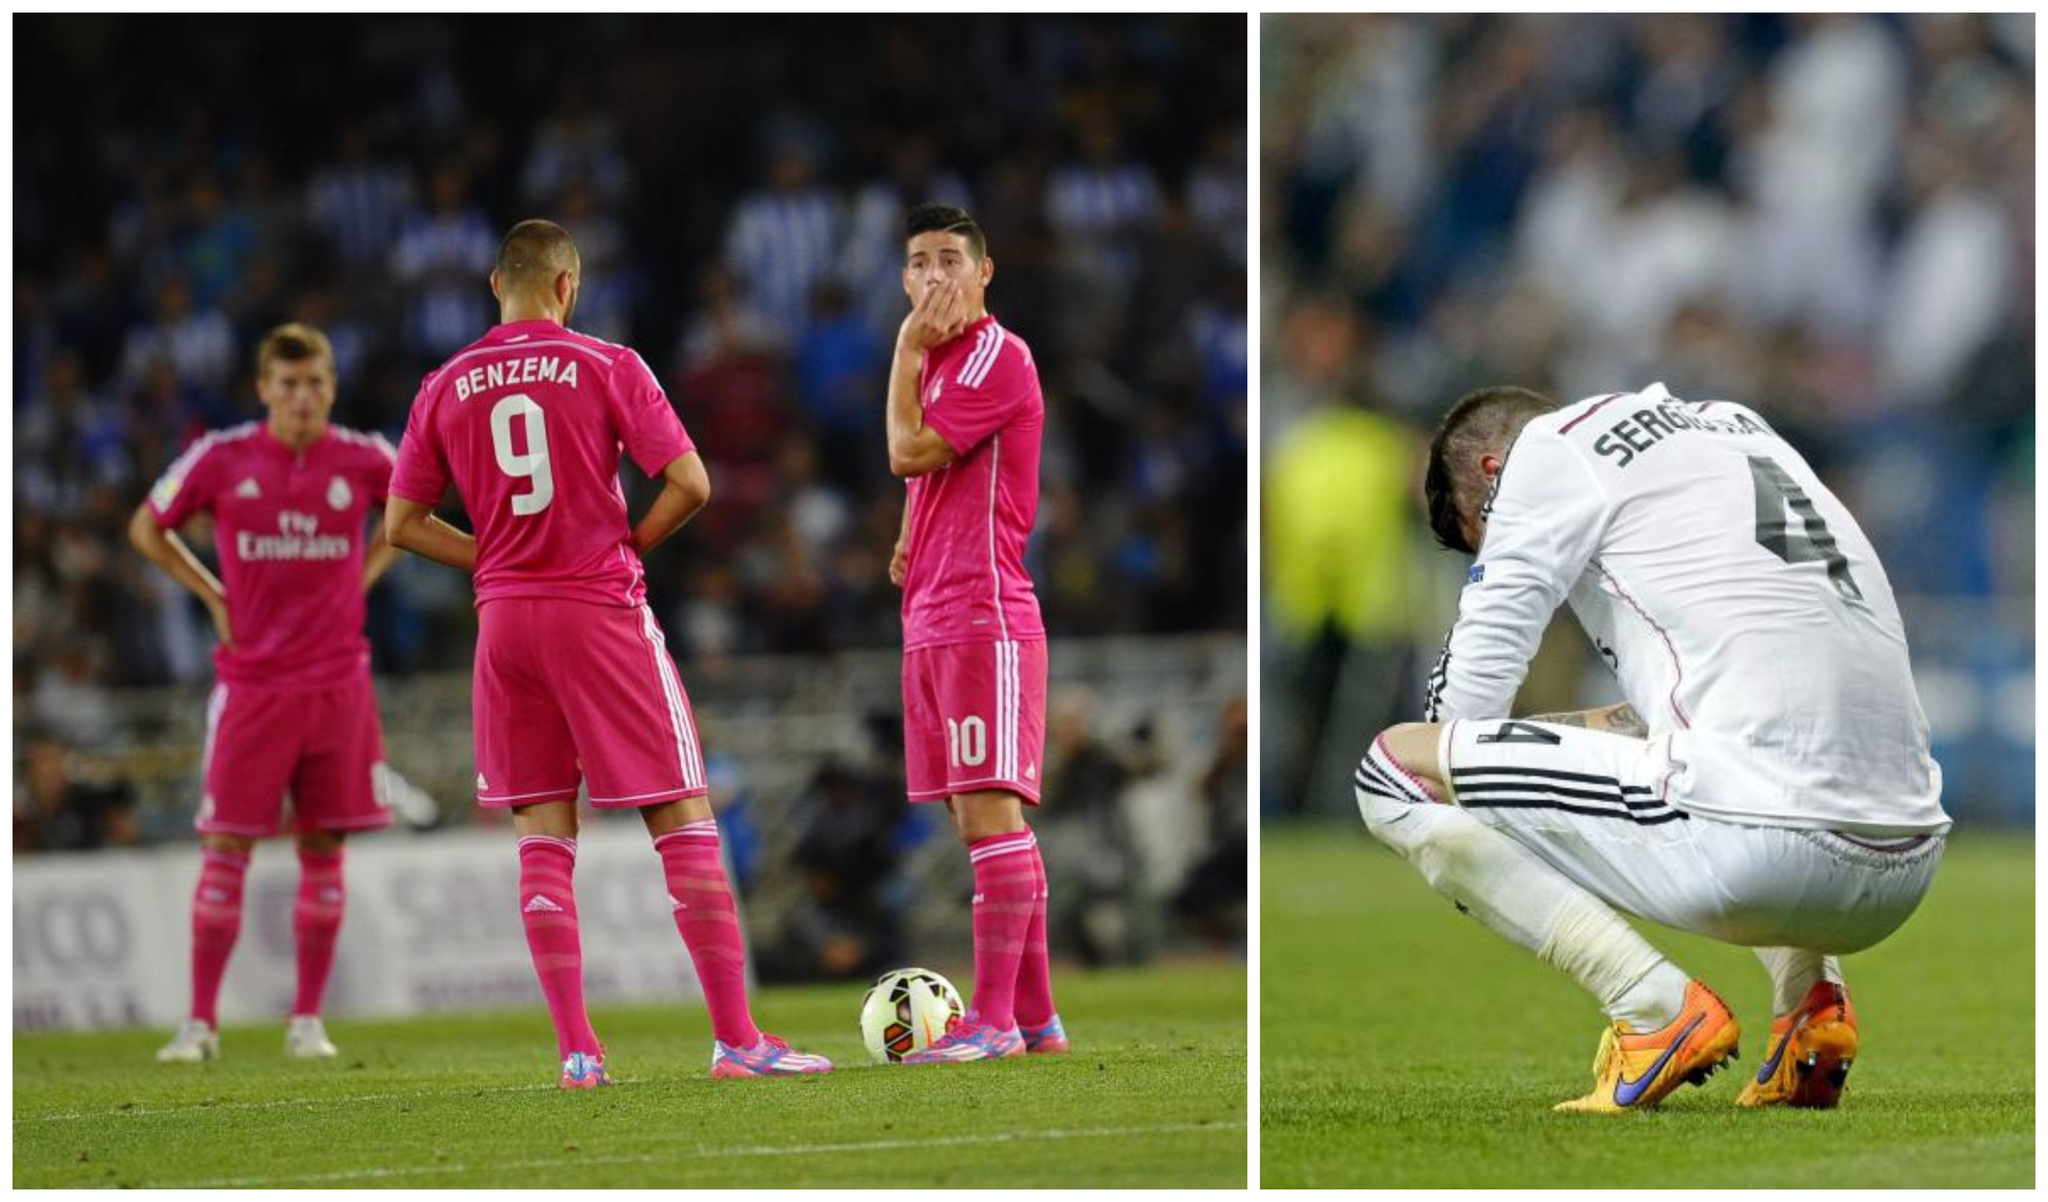 Real Madrid ignore the bad omen that comes with a pink shirt